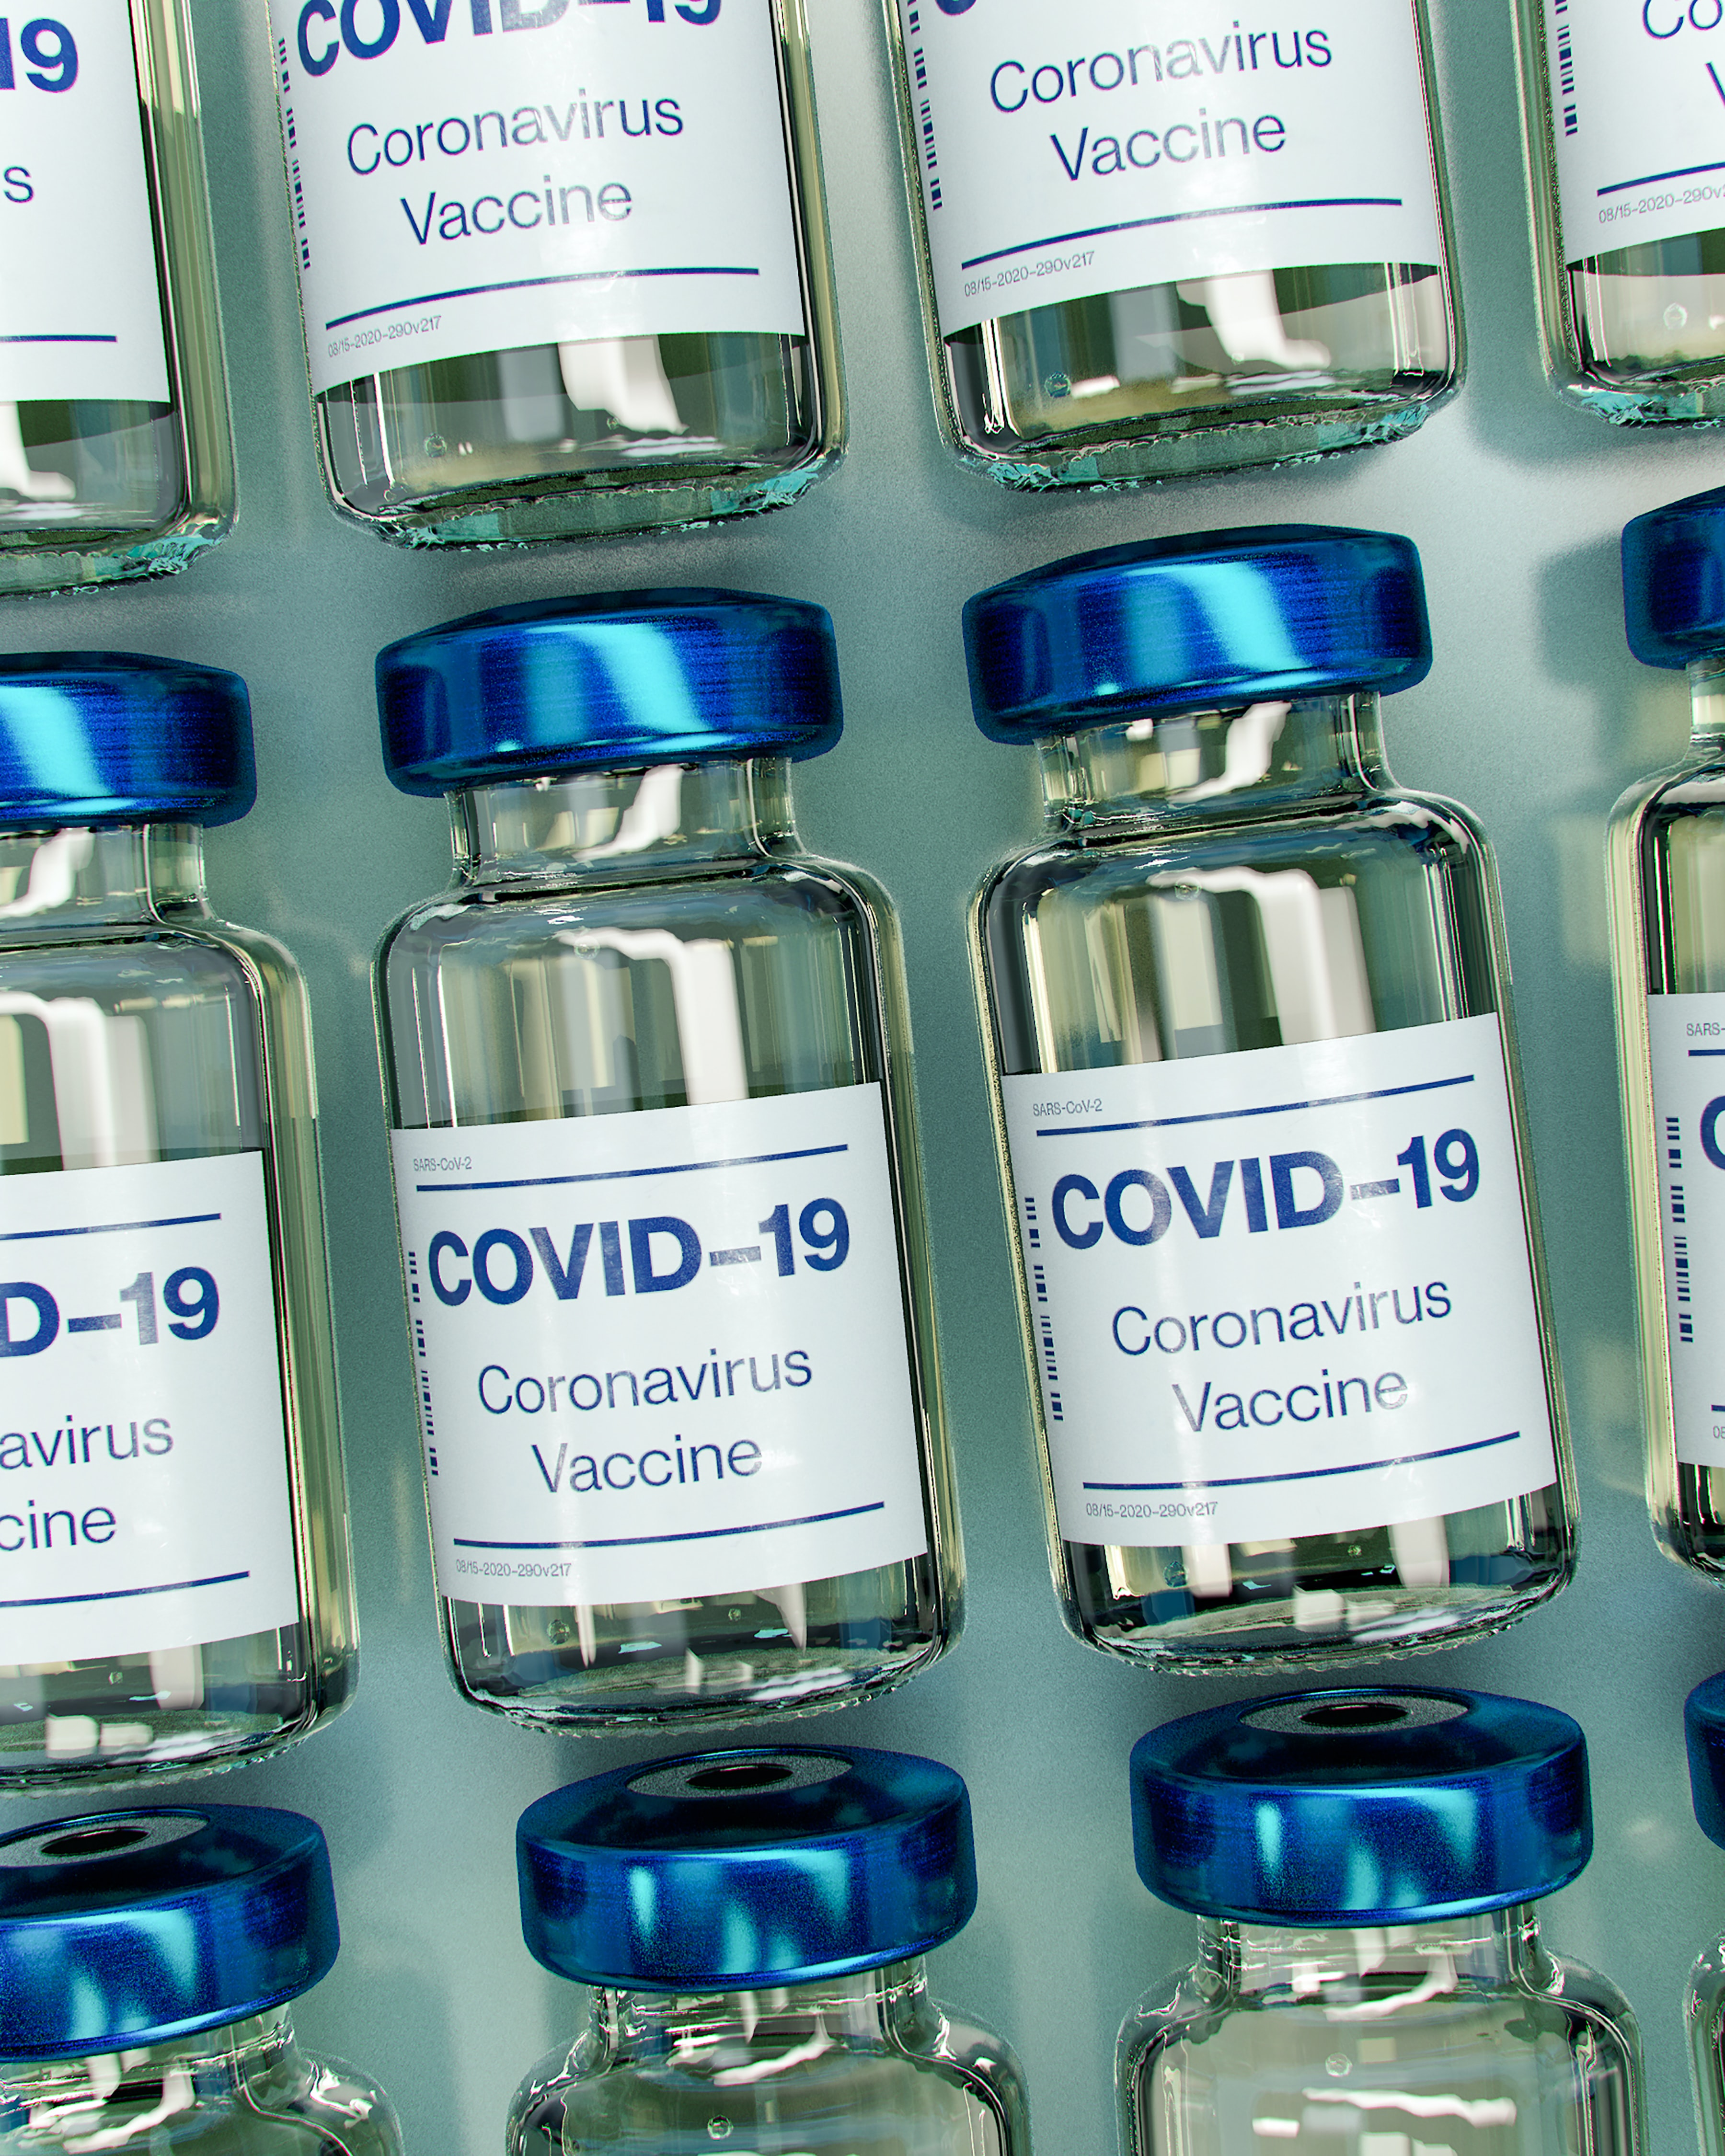 COVID-19 Vaccinations for Carers